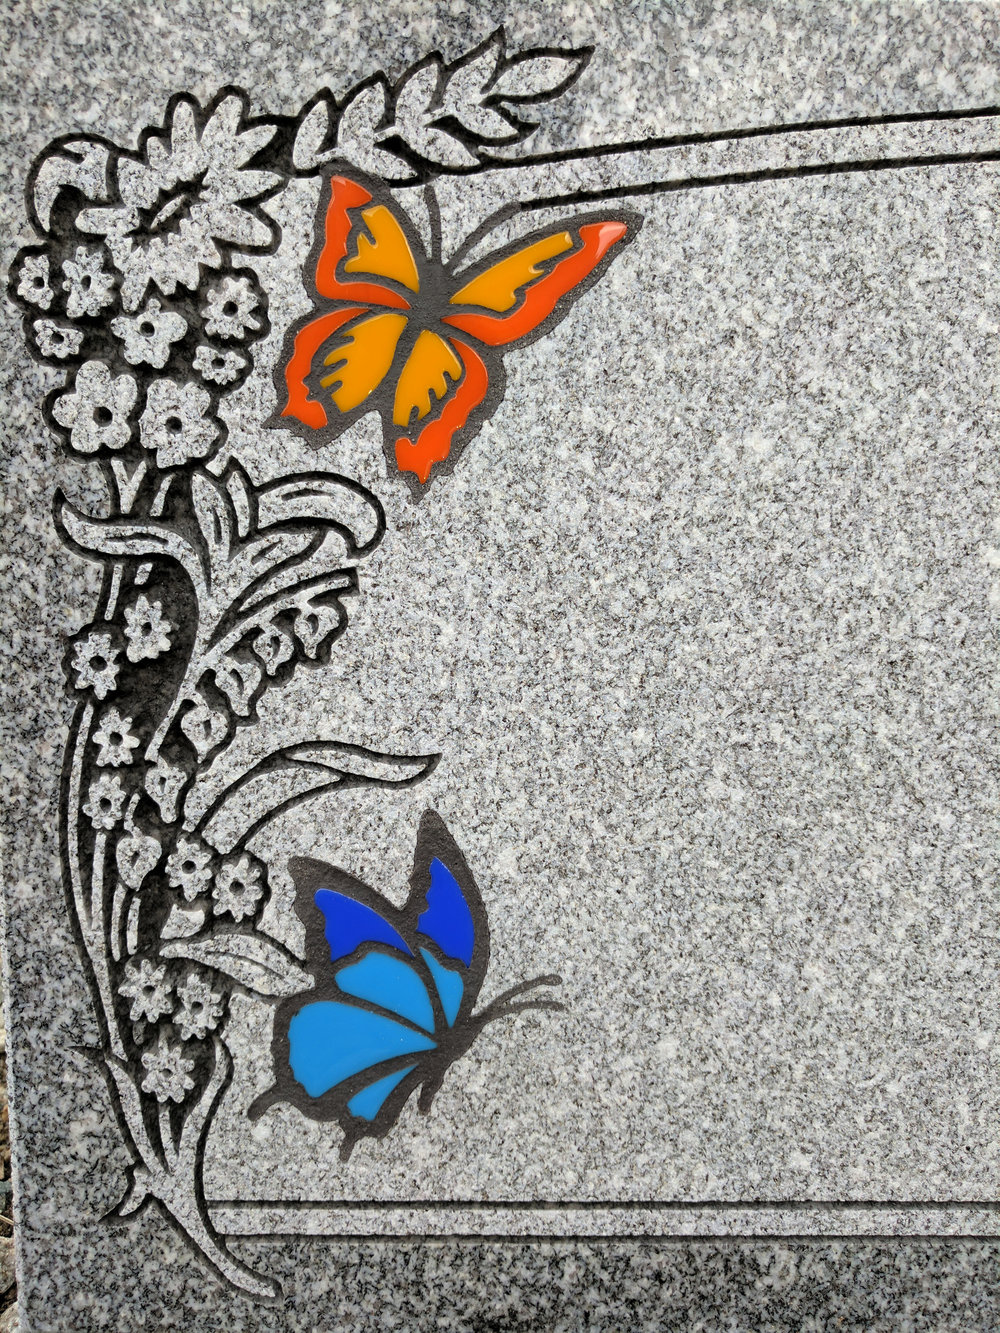 Butterfly Glass Inlays (Dry)